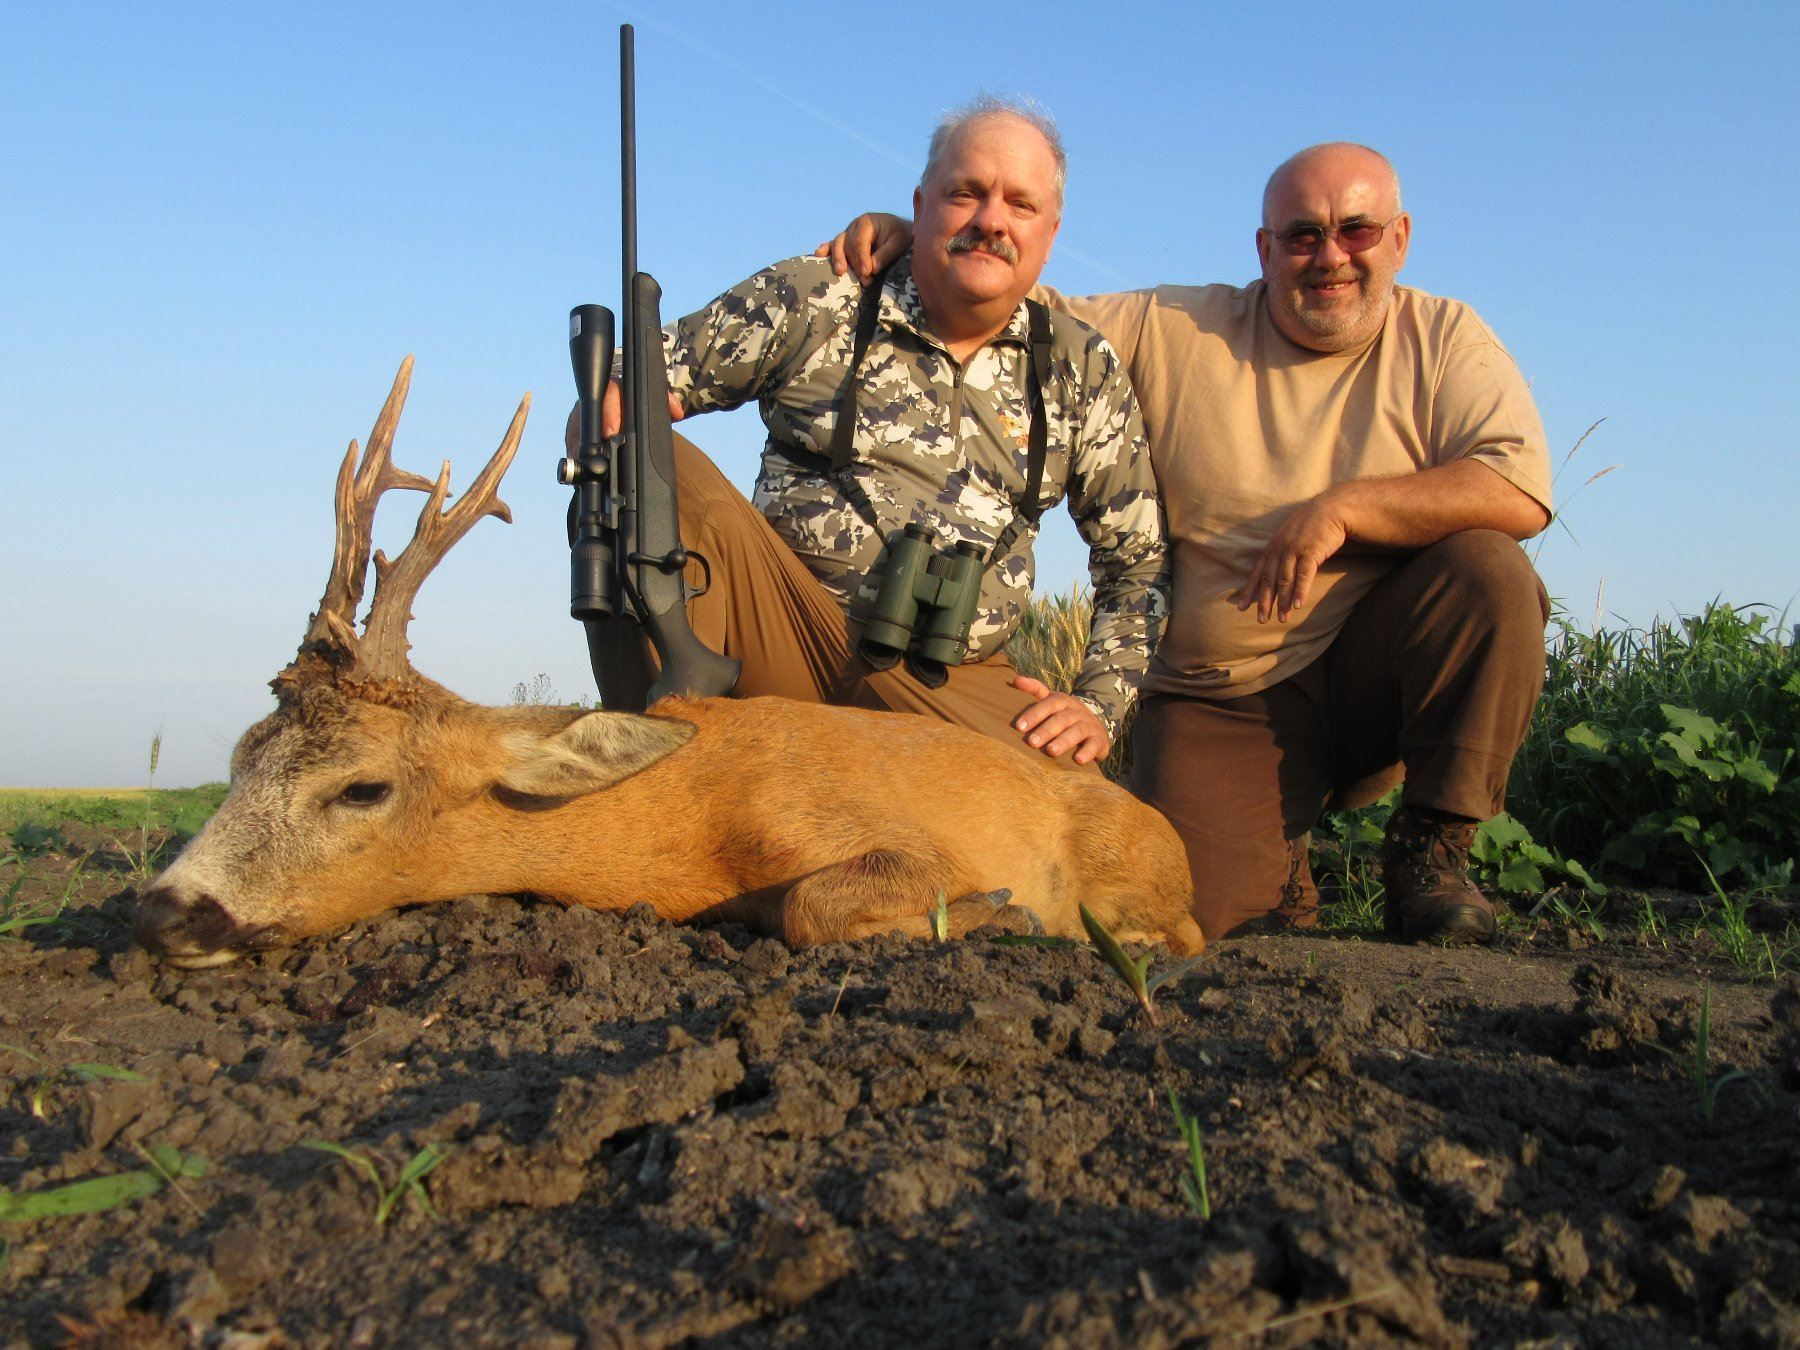 Serbia: 5 Day 6 Night Roe Deer Hunt for 1 Hunter & 1 Observer (or Two Hunters), includes 1 Roe Deer